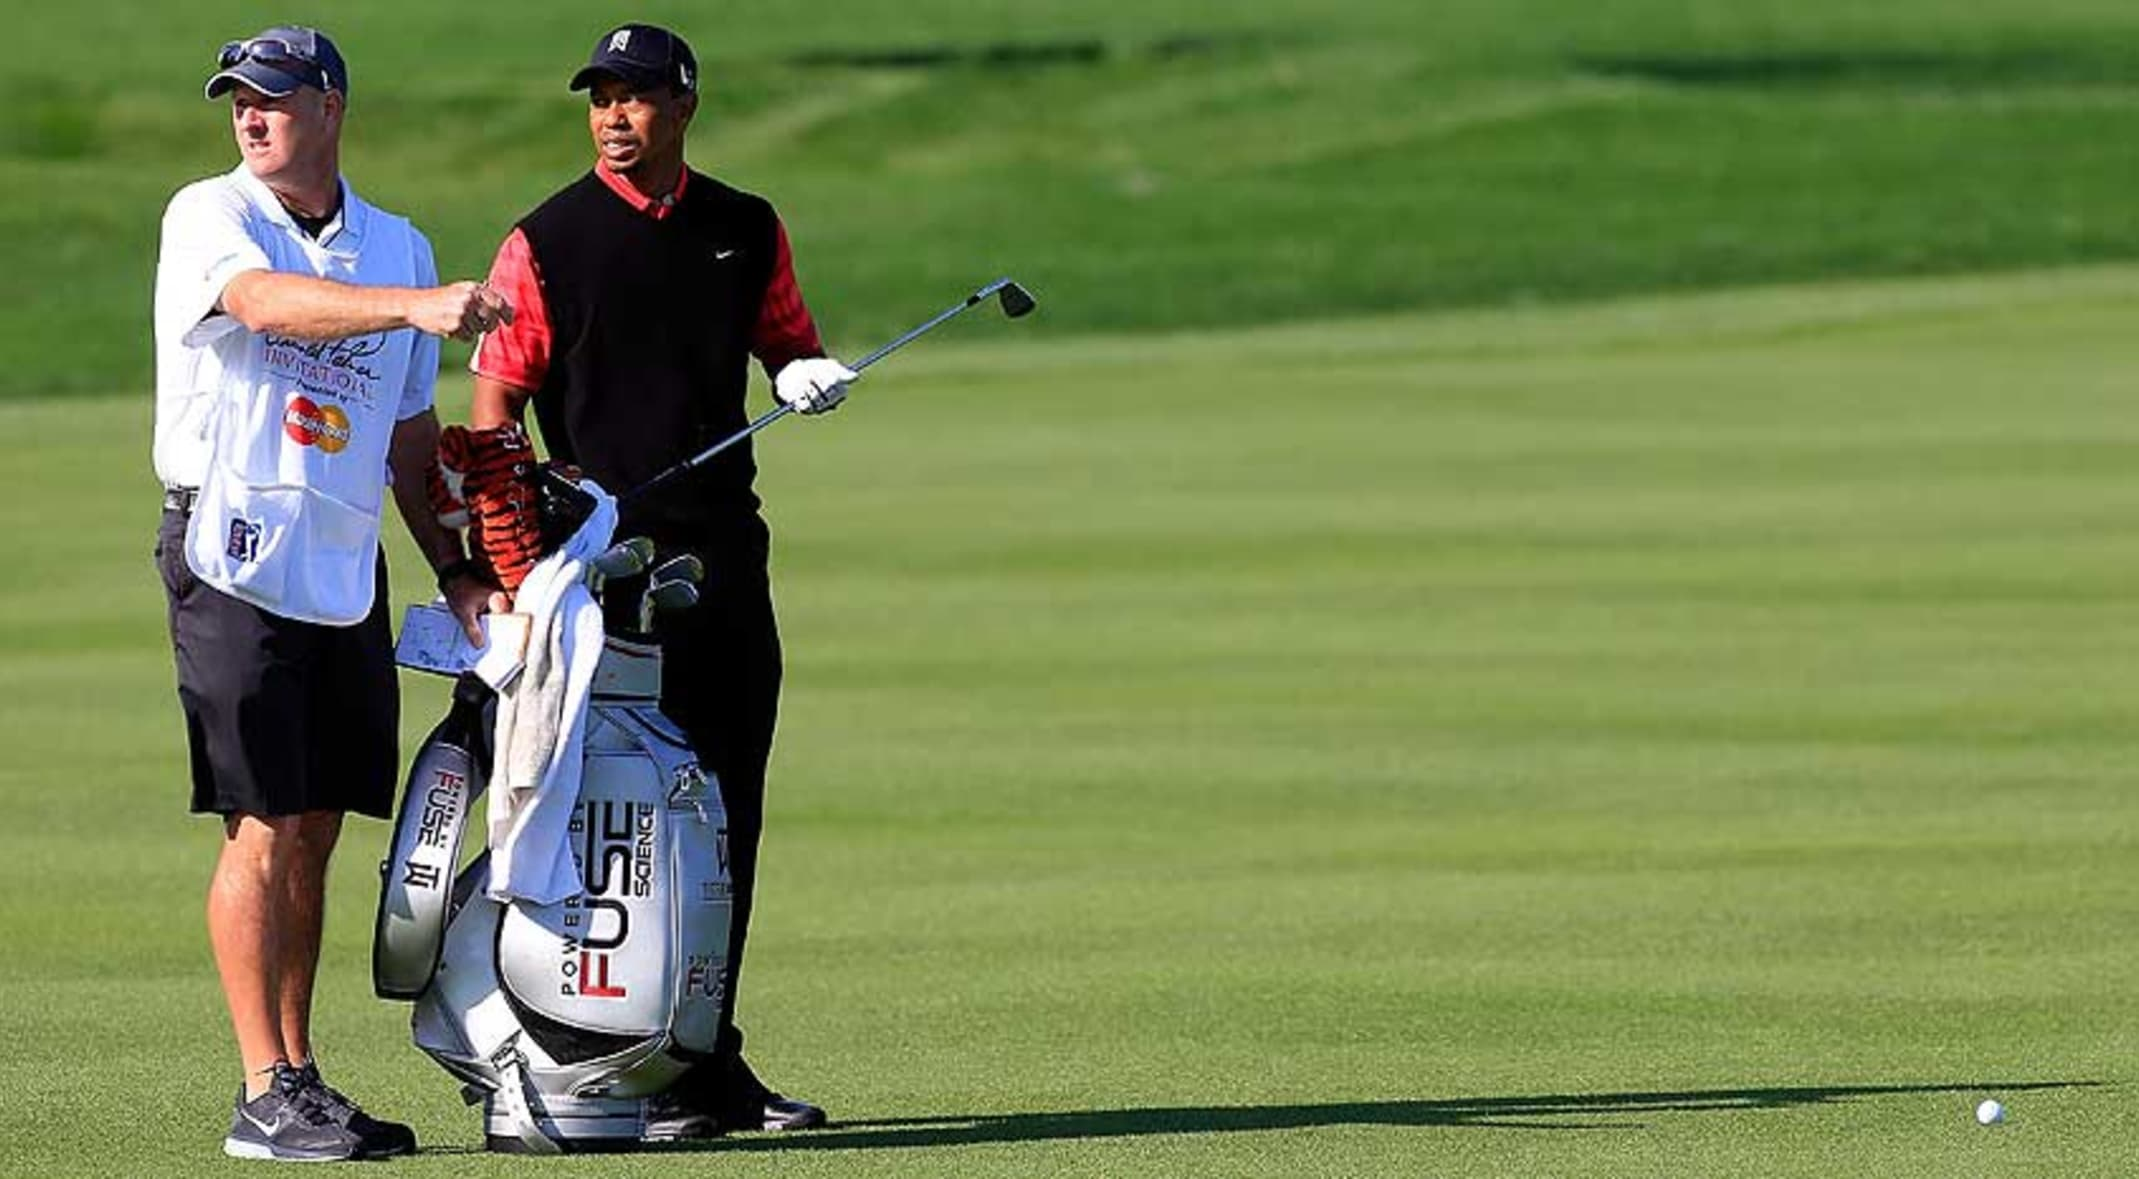 Tiger Woods has won the event eight times but won't win his ninth in